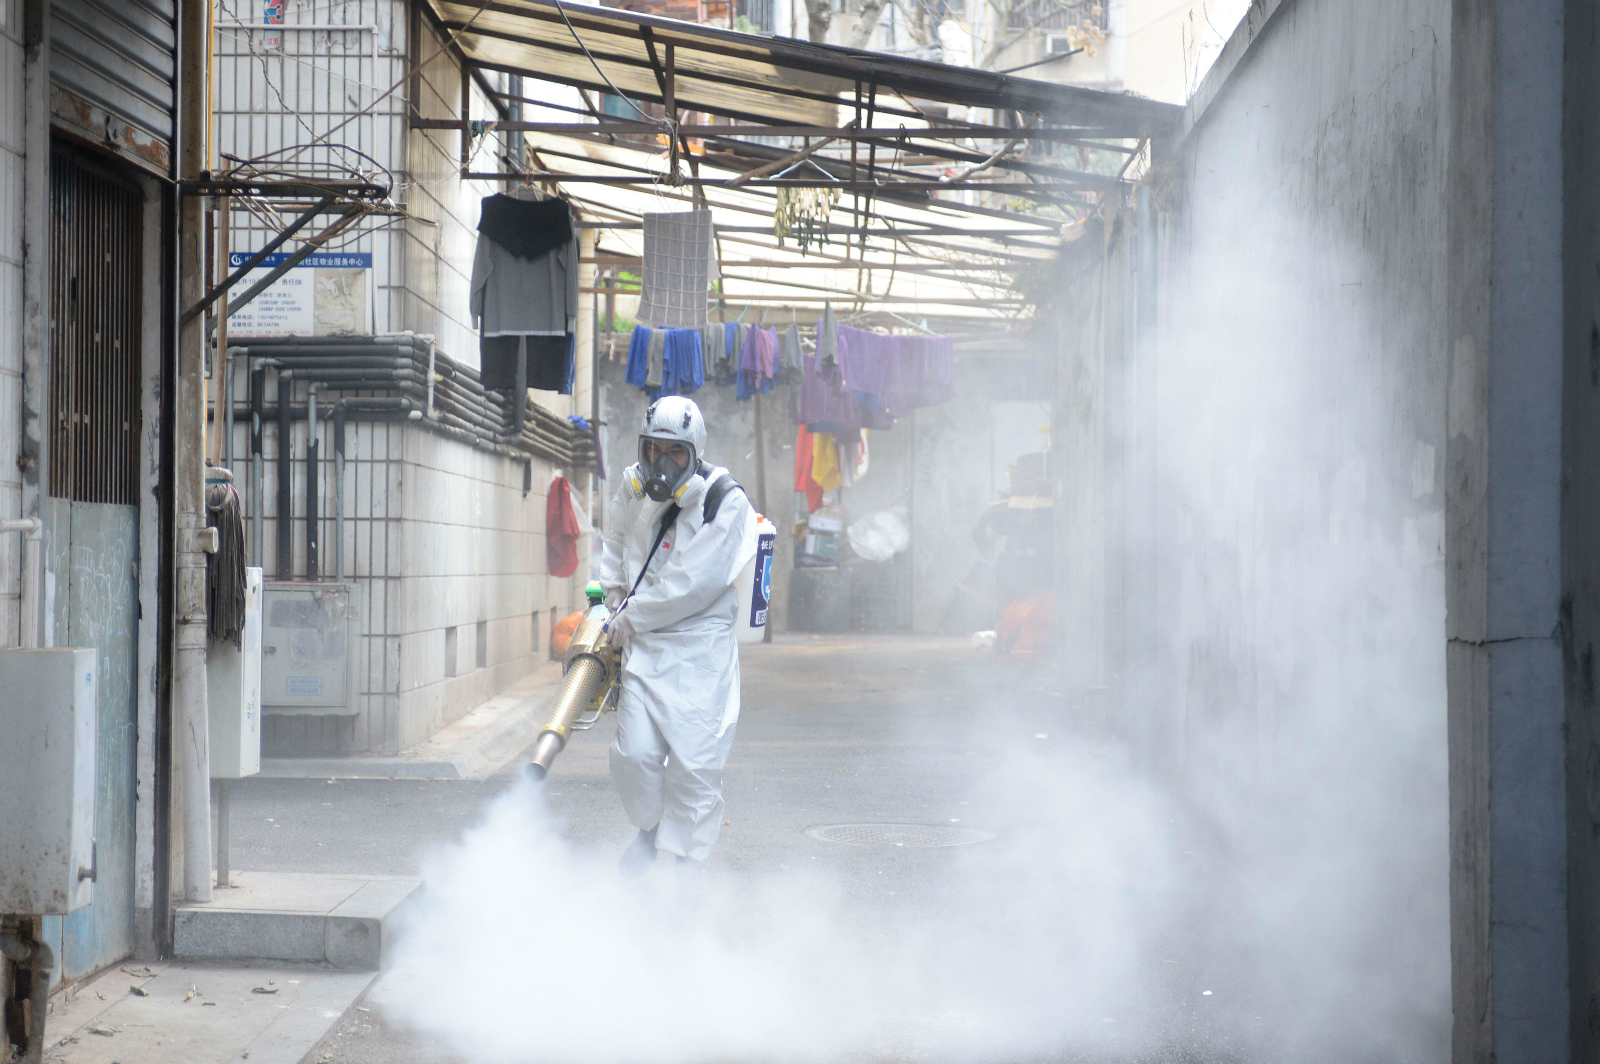 volunteer sprays disinfectant in Changsha, Hunan province